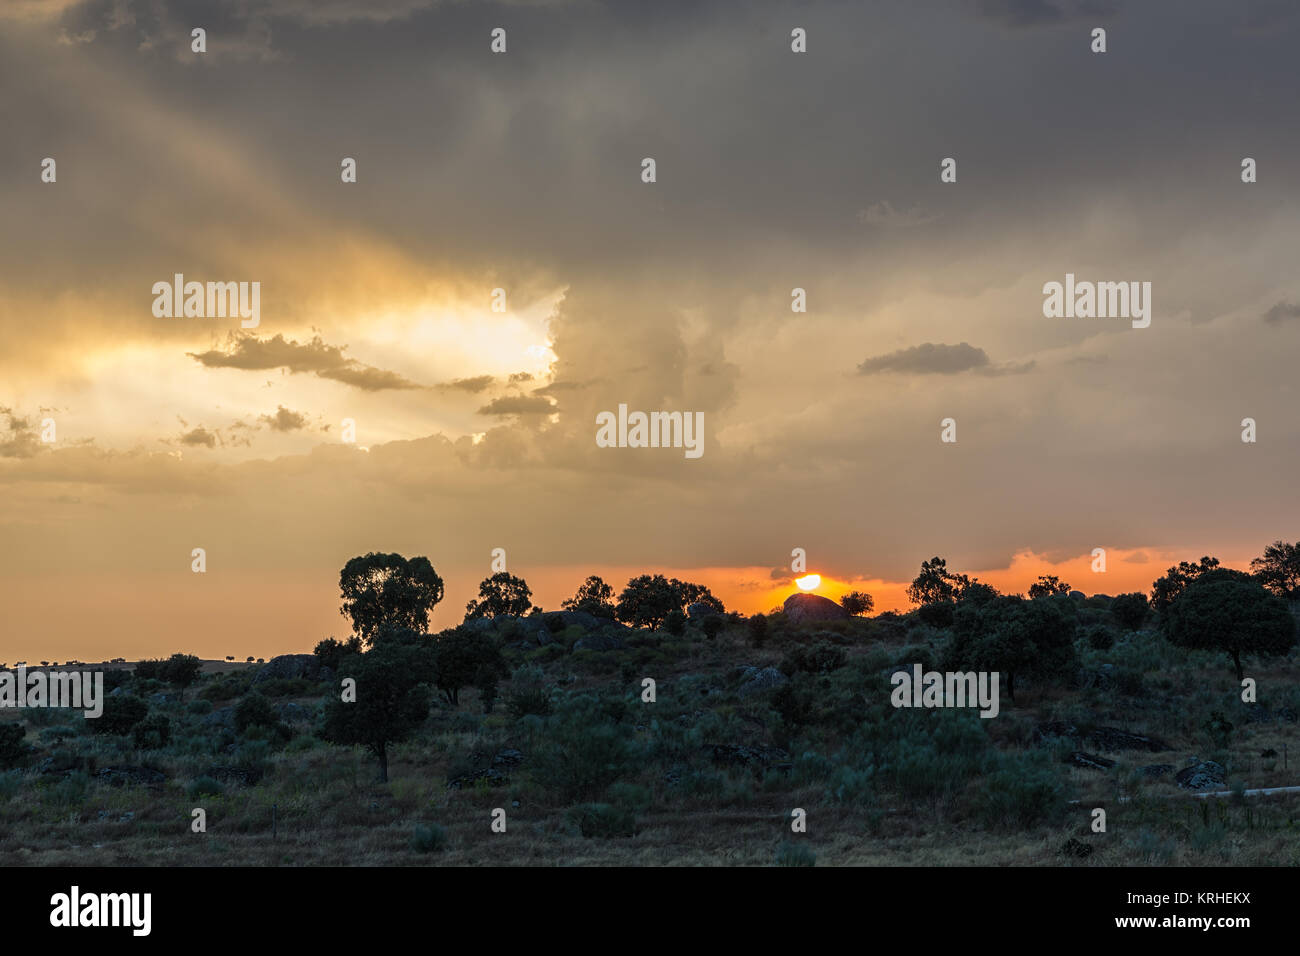 Landscape at sunset in the natural area of the Barruecos. Extremadura. Spain. Stock Photo